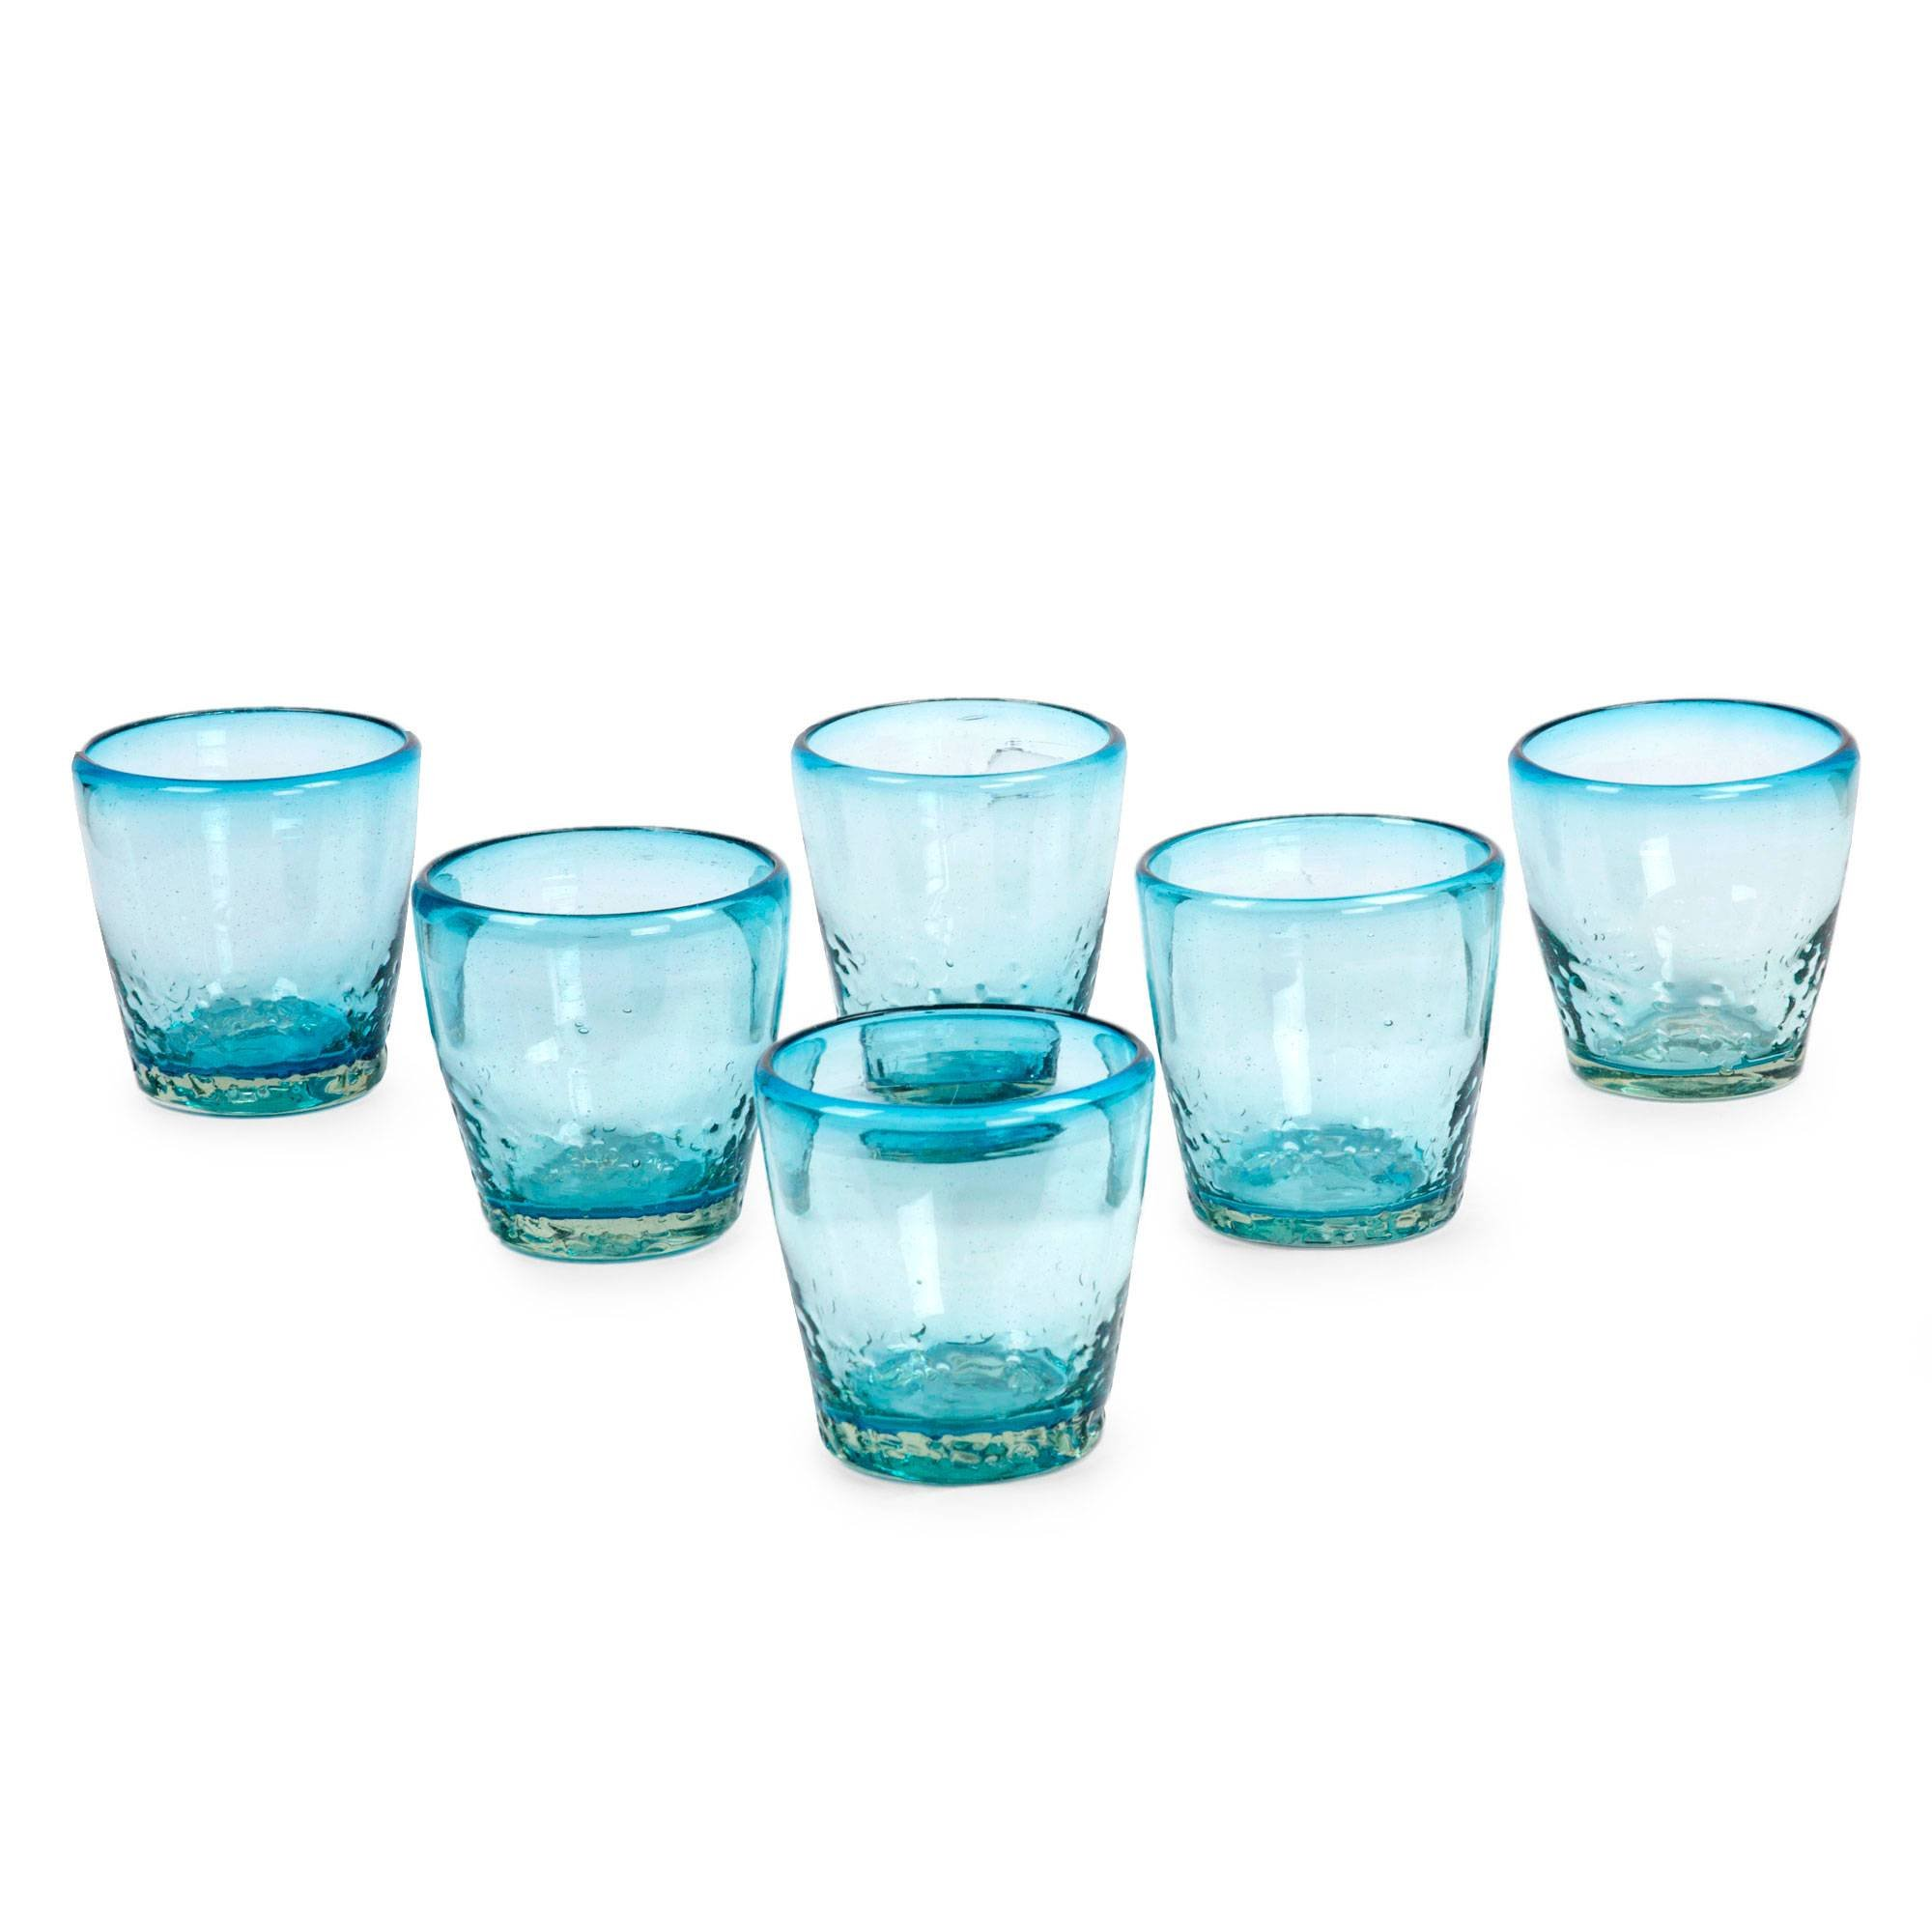 NOVICA Hand Blown Light Blue Glass Juice Glasses, 11 oz. 'Delicious Blue' (set of 6)